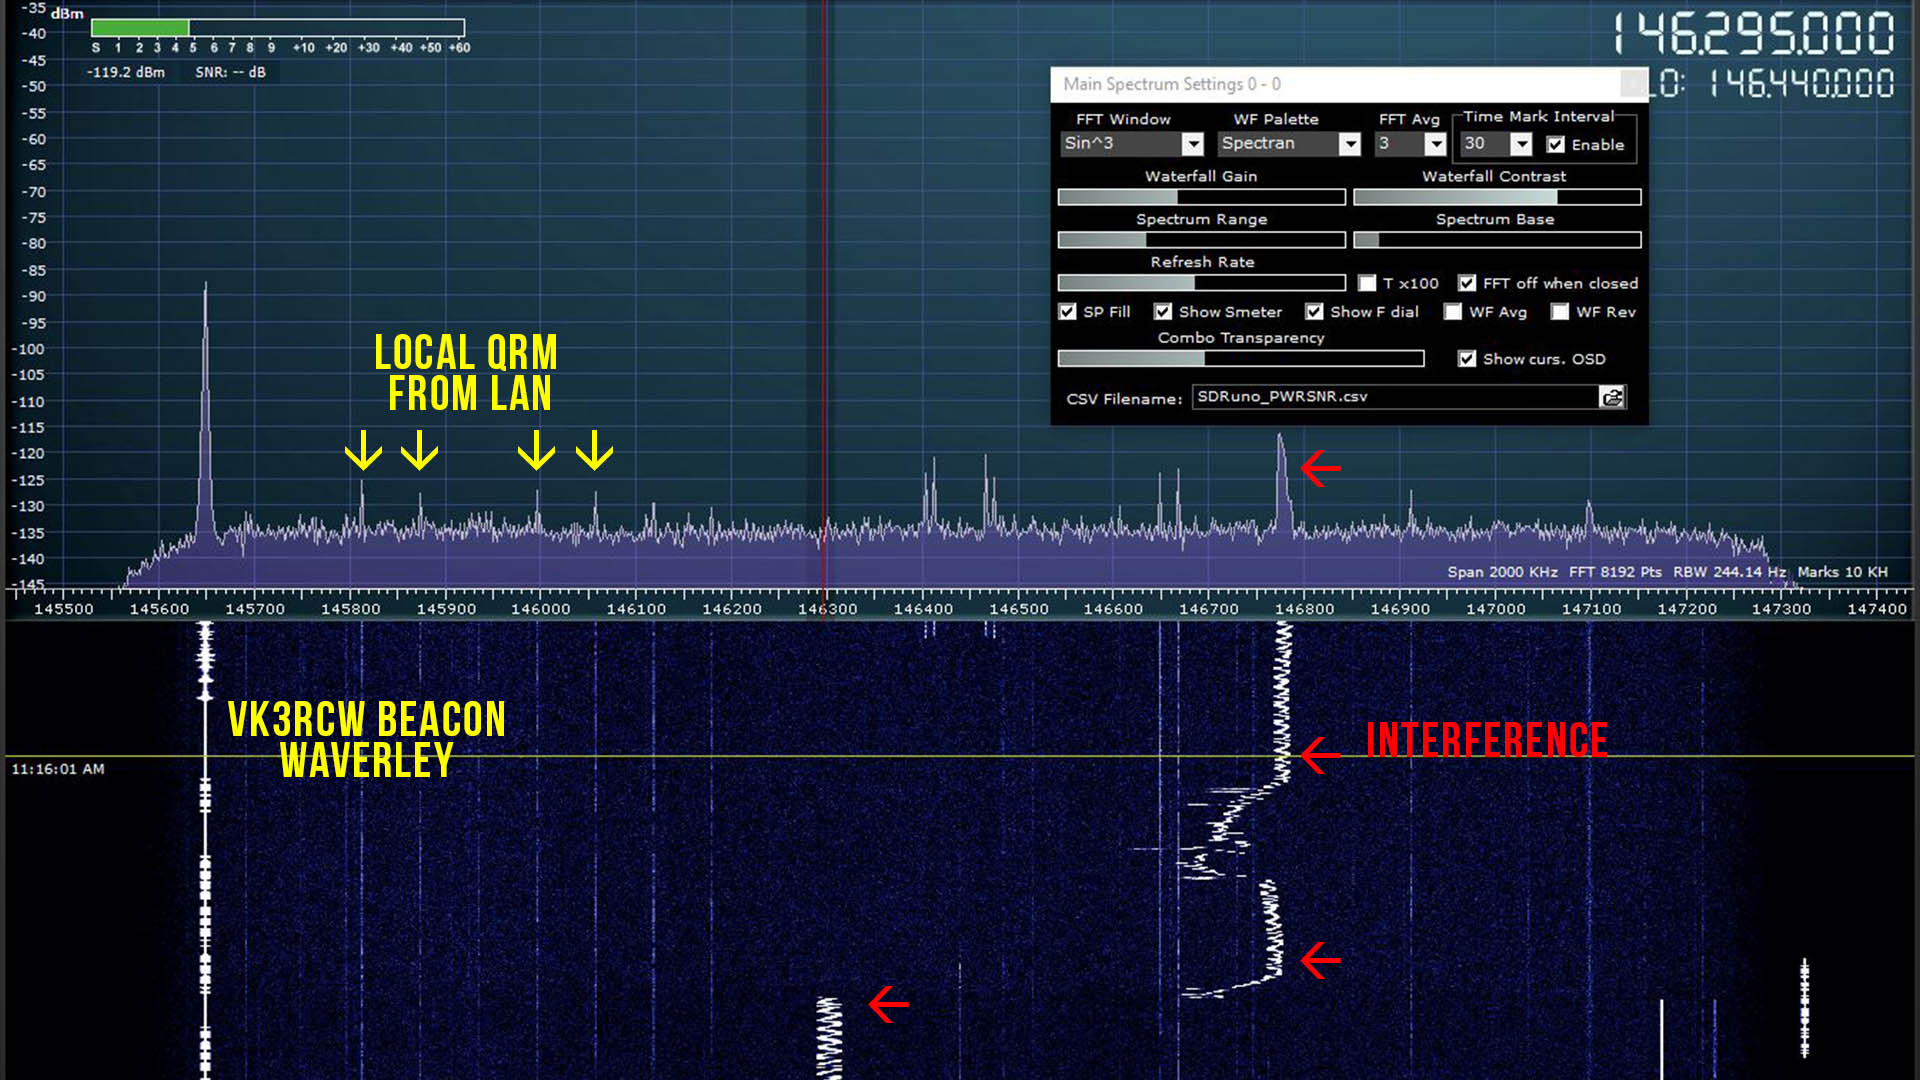 Tracking down VHF Interference on the 2m band